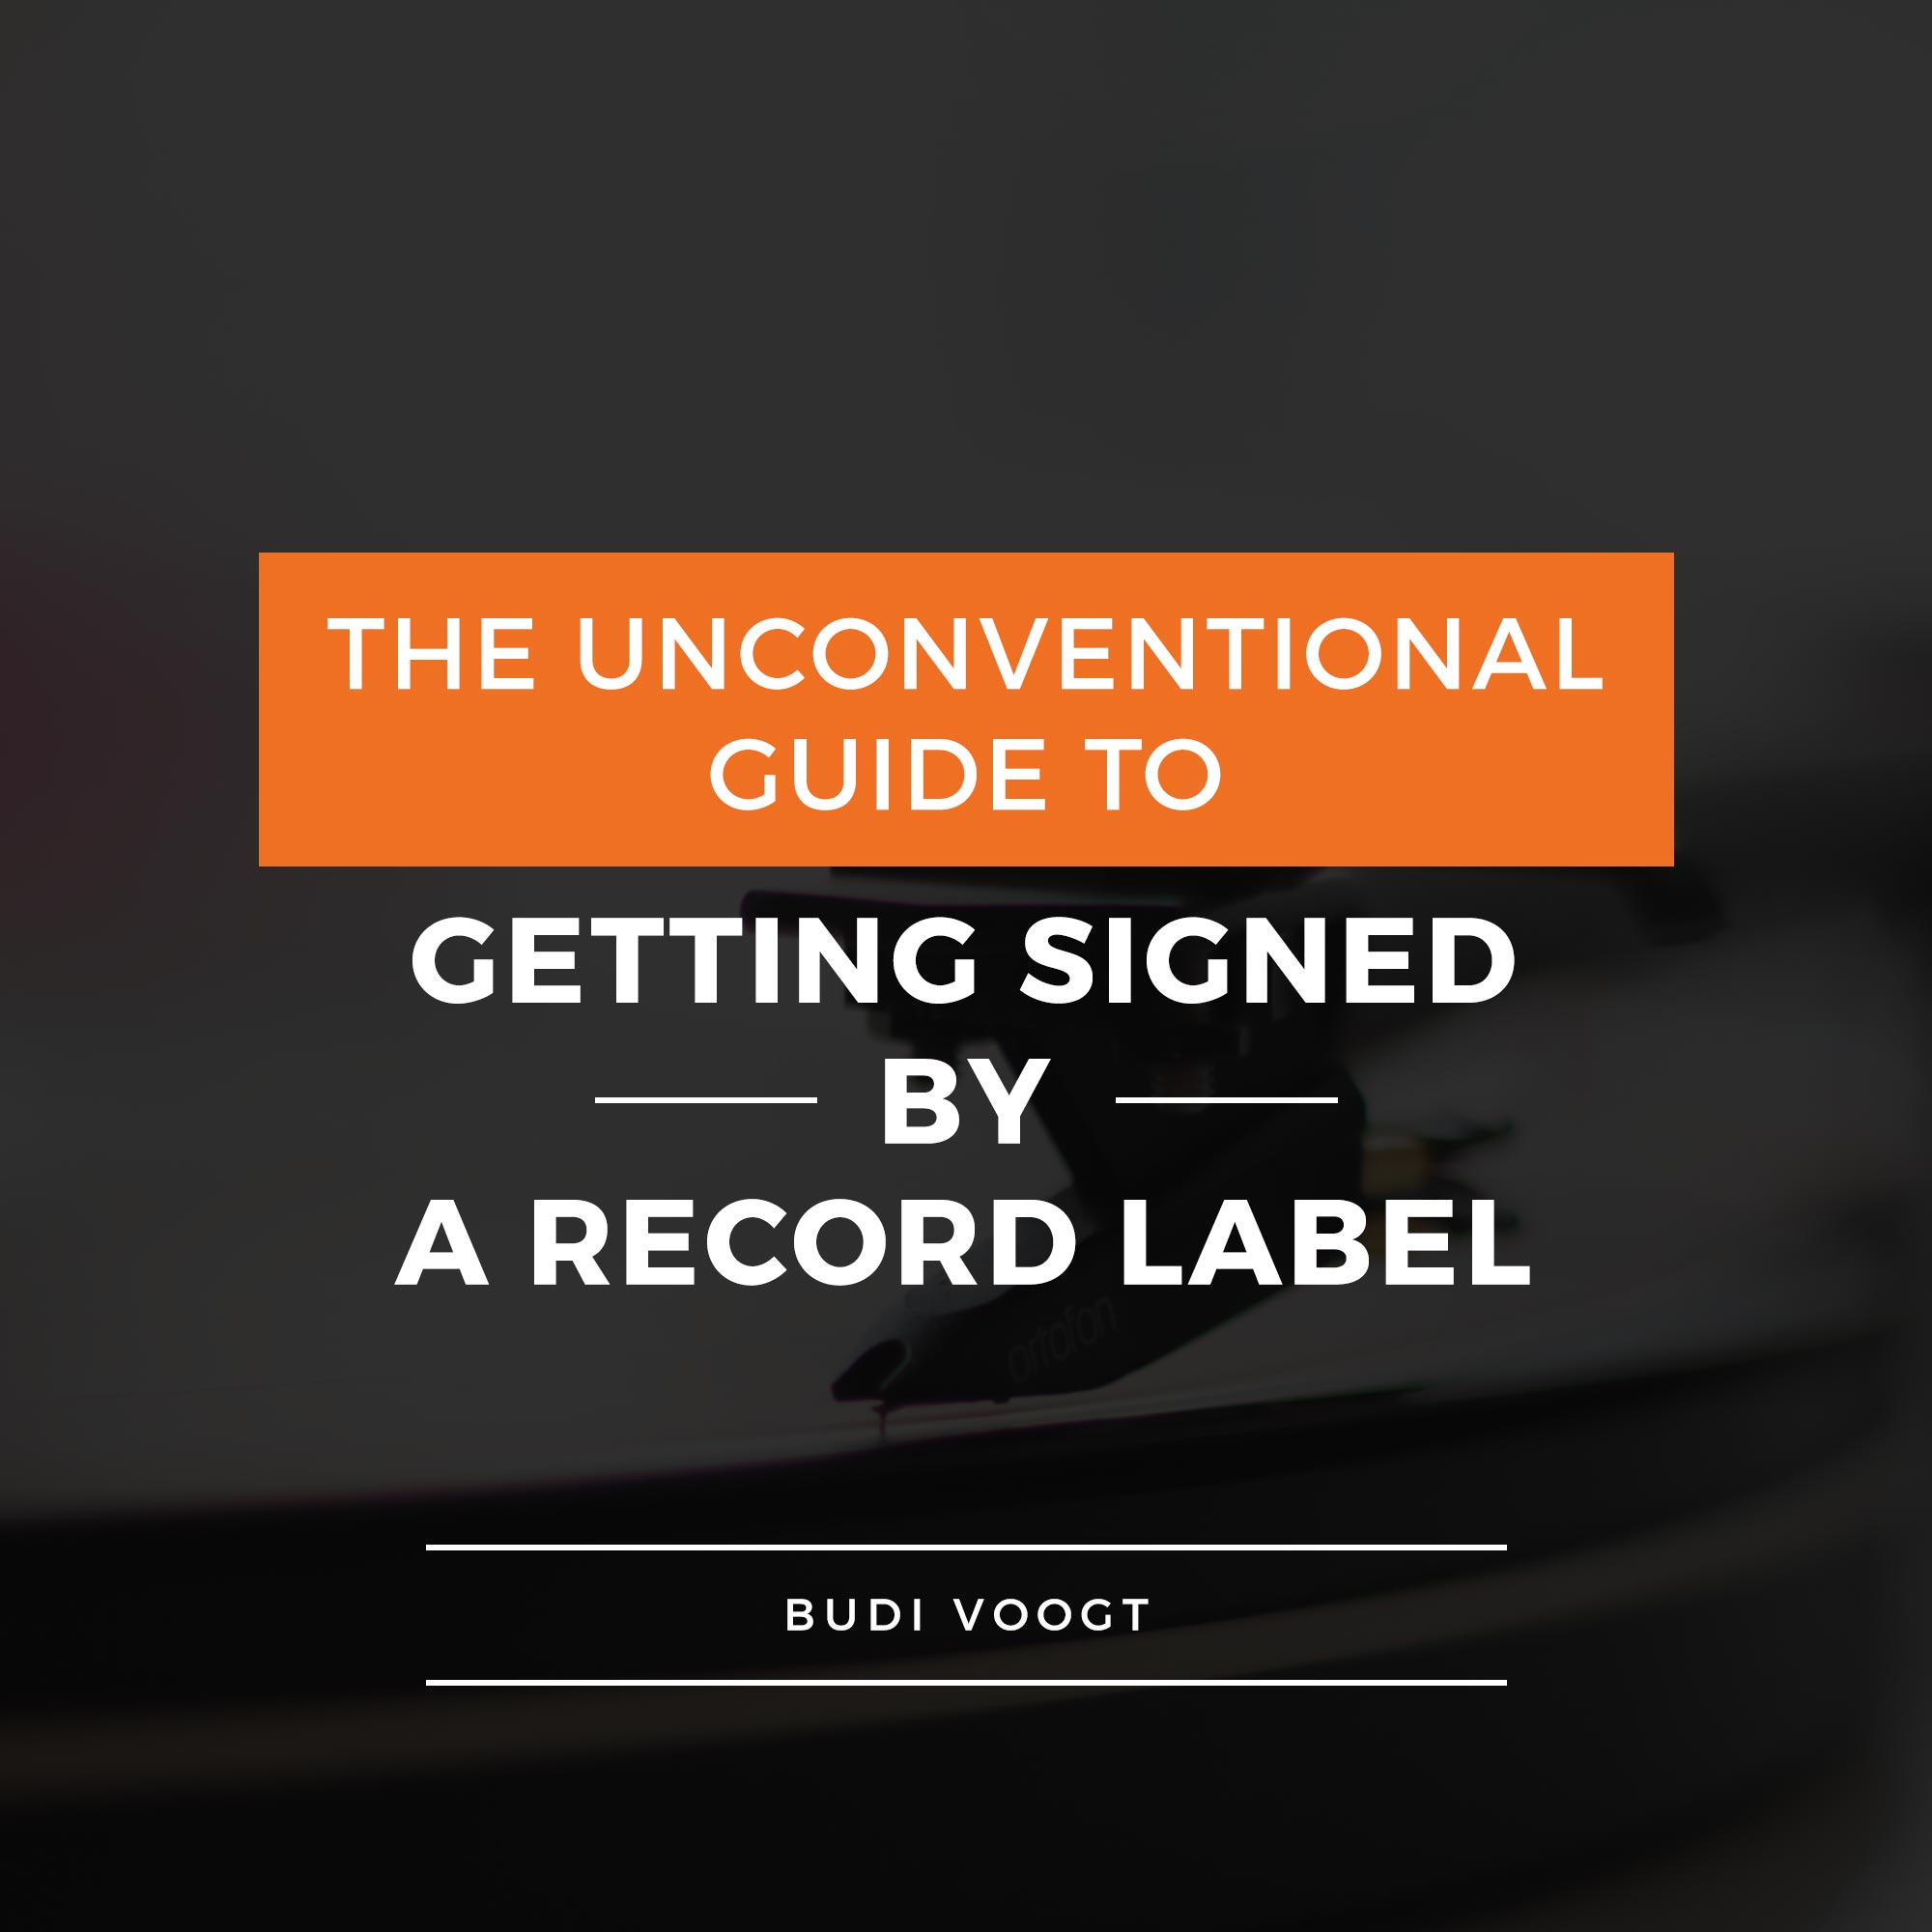 The Unconventional Guide to Getting Signed by a Record Label